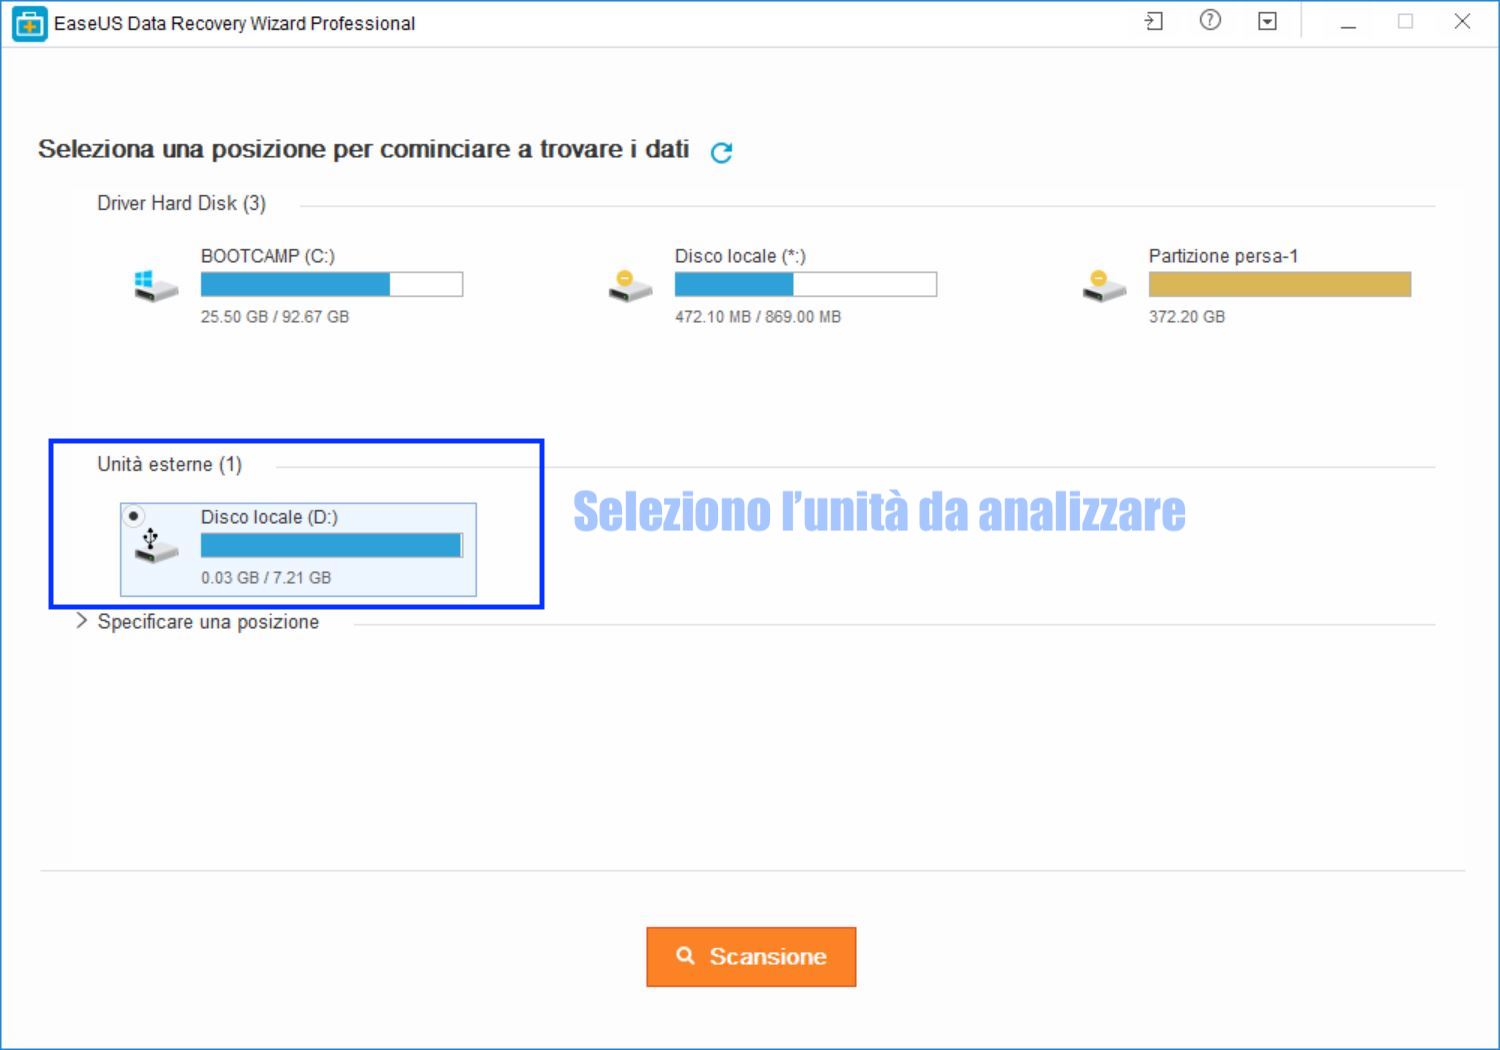 interfaccia iniziale data recovery wizard per recuperare file eliminati da pendrive usb o hard disk